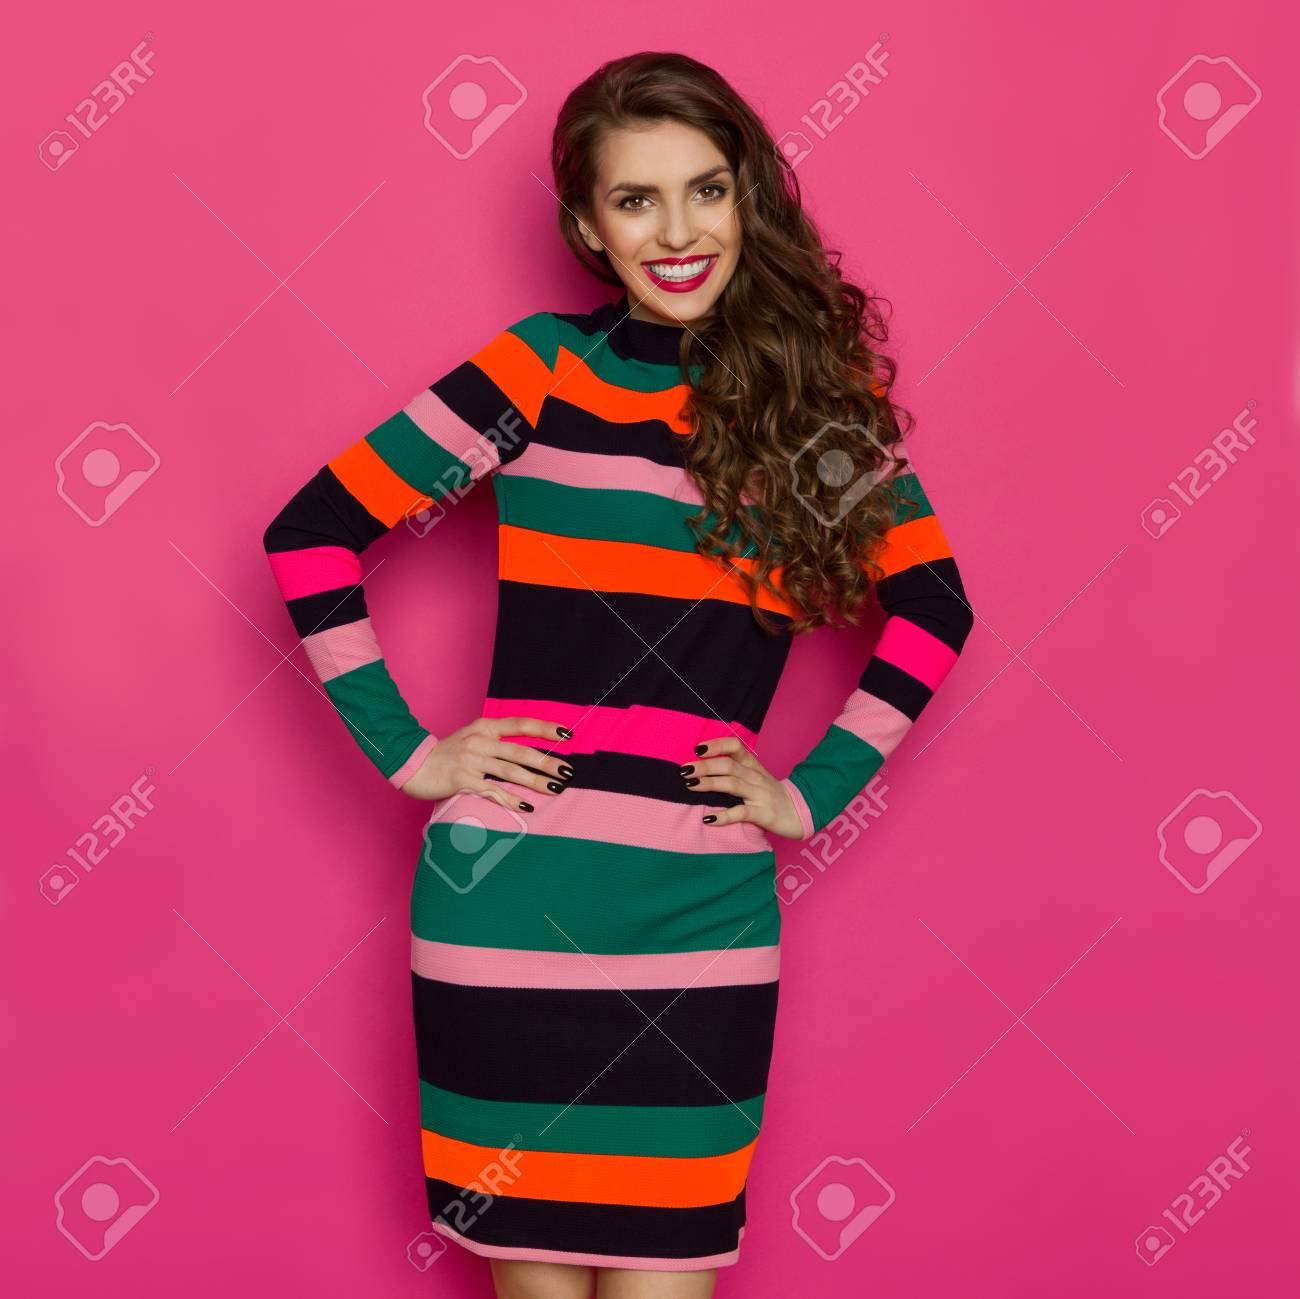 f7252d066518 Beautiful young woman in colorful vibrant striped dress is holding hands on  hip